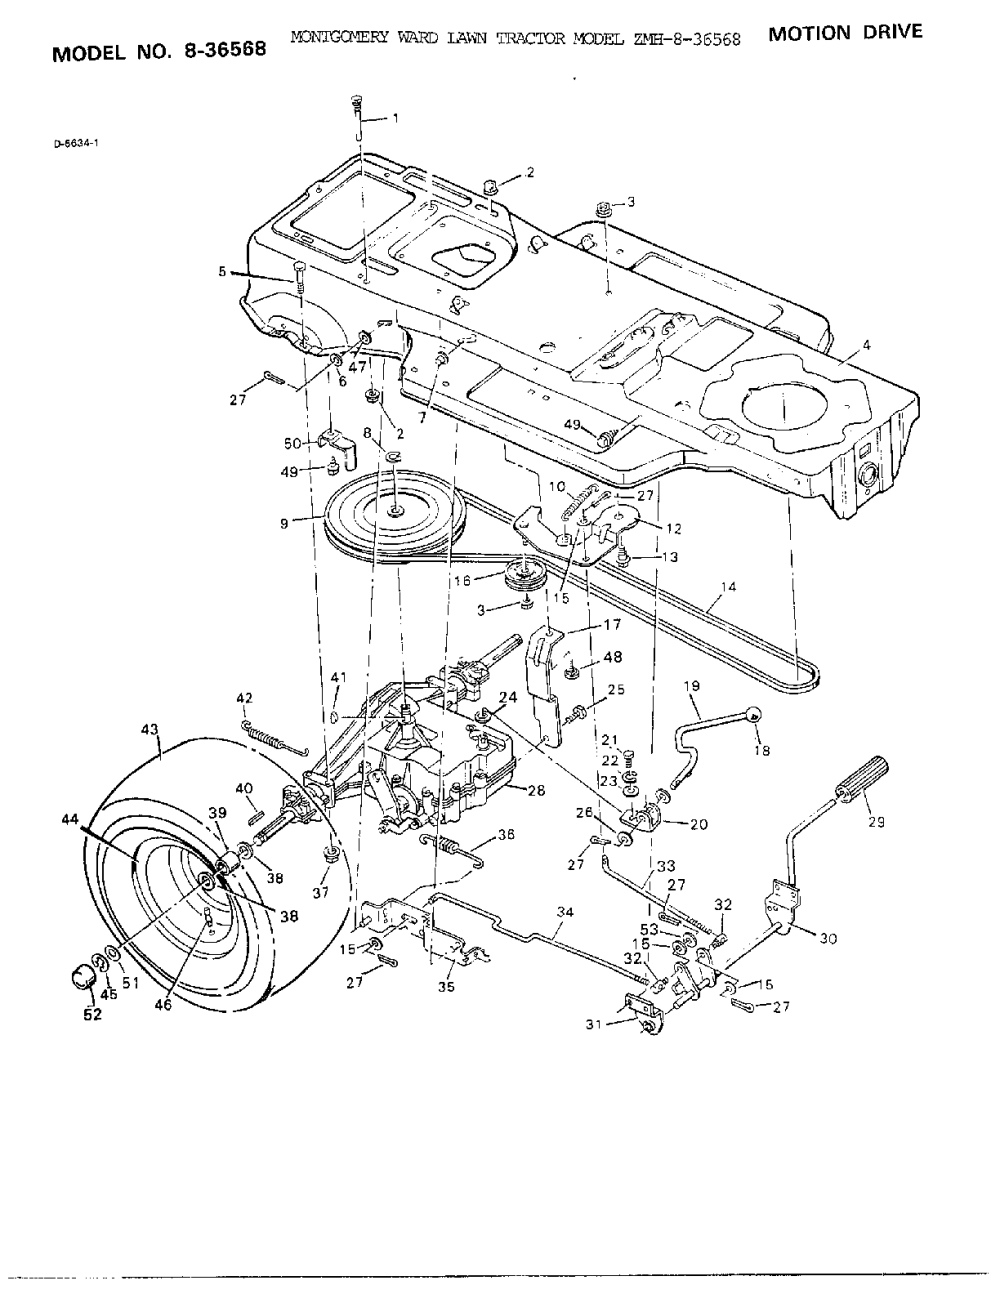 medium resolution of murray 8 36568 motion drive diagram